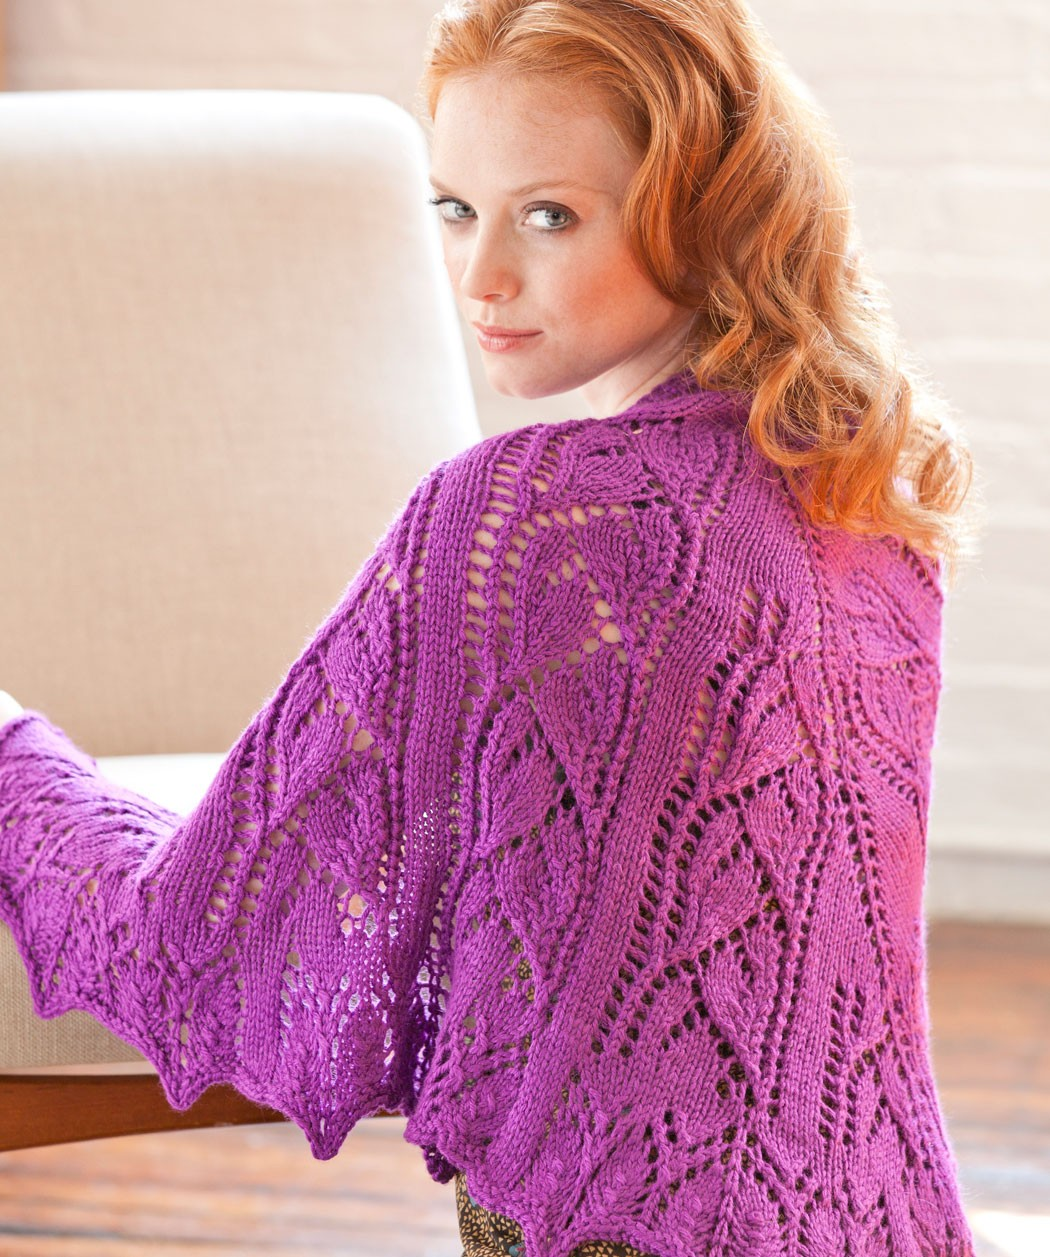 Shawl Knitting Pattern : Knitted Shawl Patterns A Knitting Blog